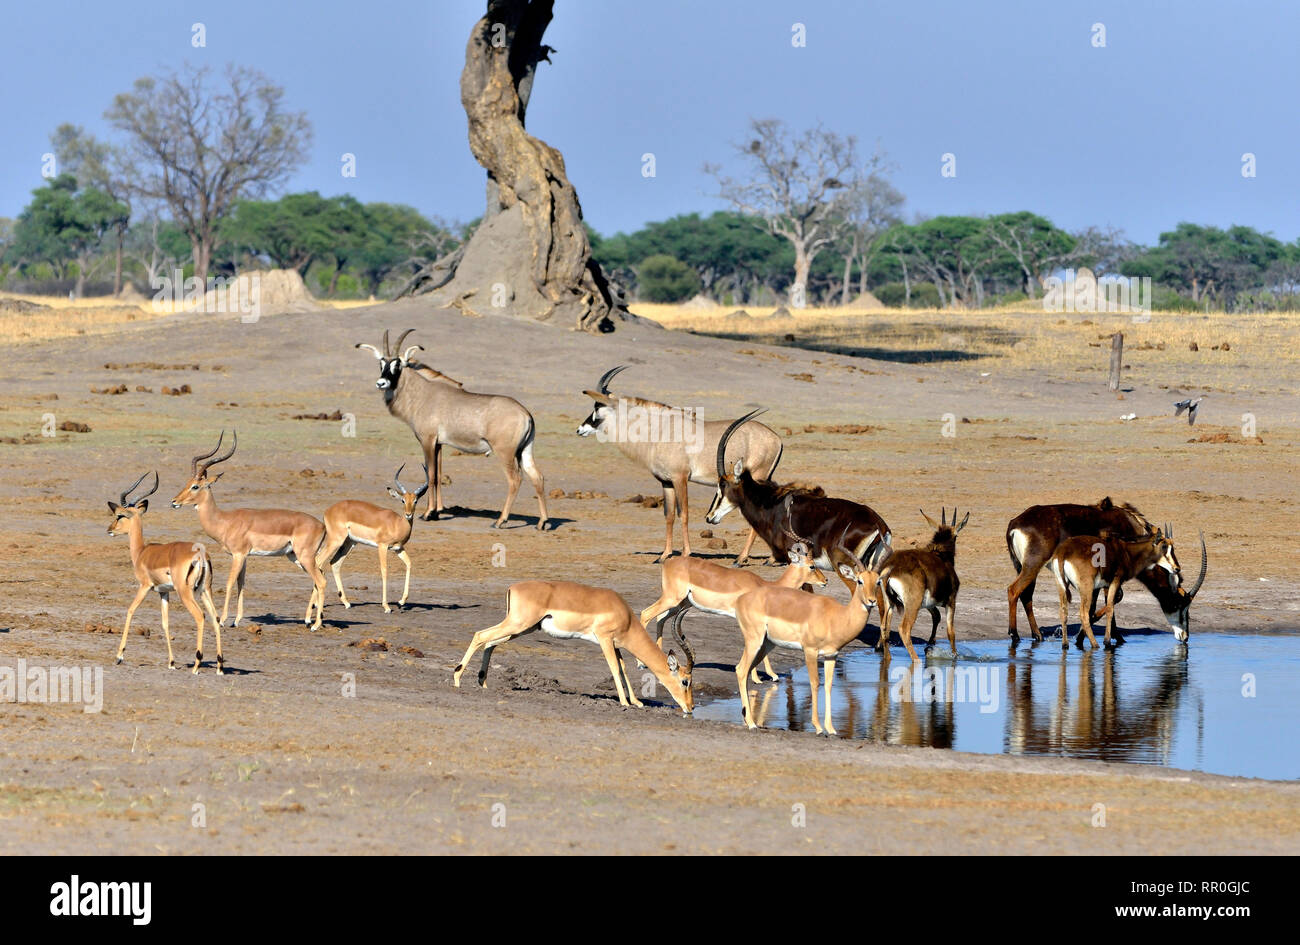 zoology, mammal (mammalia), sable (Hippotragus Niger), roan (Hippotragus equinus) and impalas (Aepycer, Additional-Rights-Clearance-Info-Not-Available - Stock Image